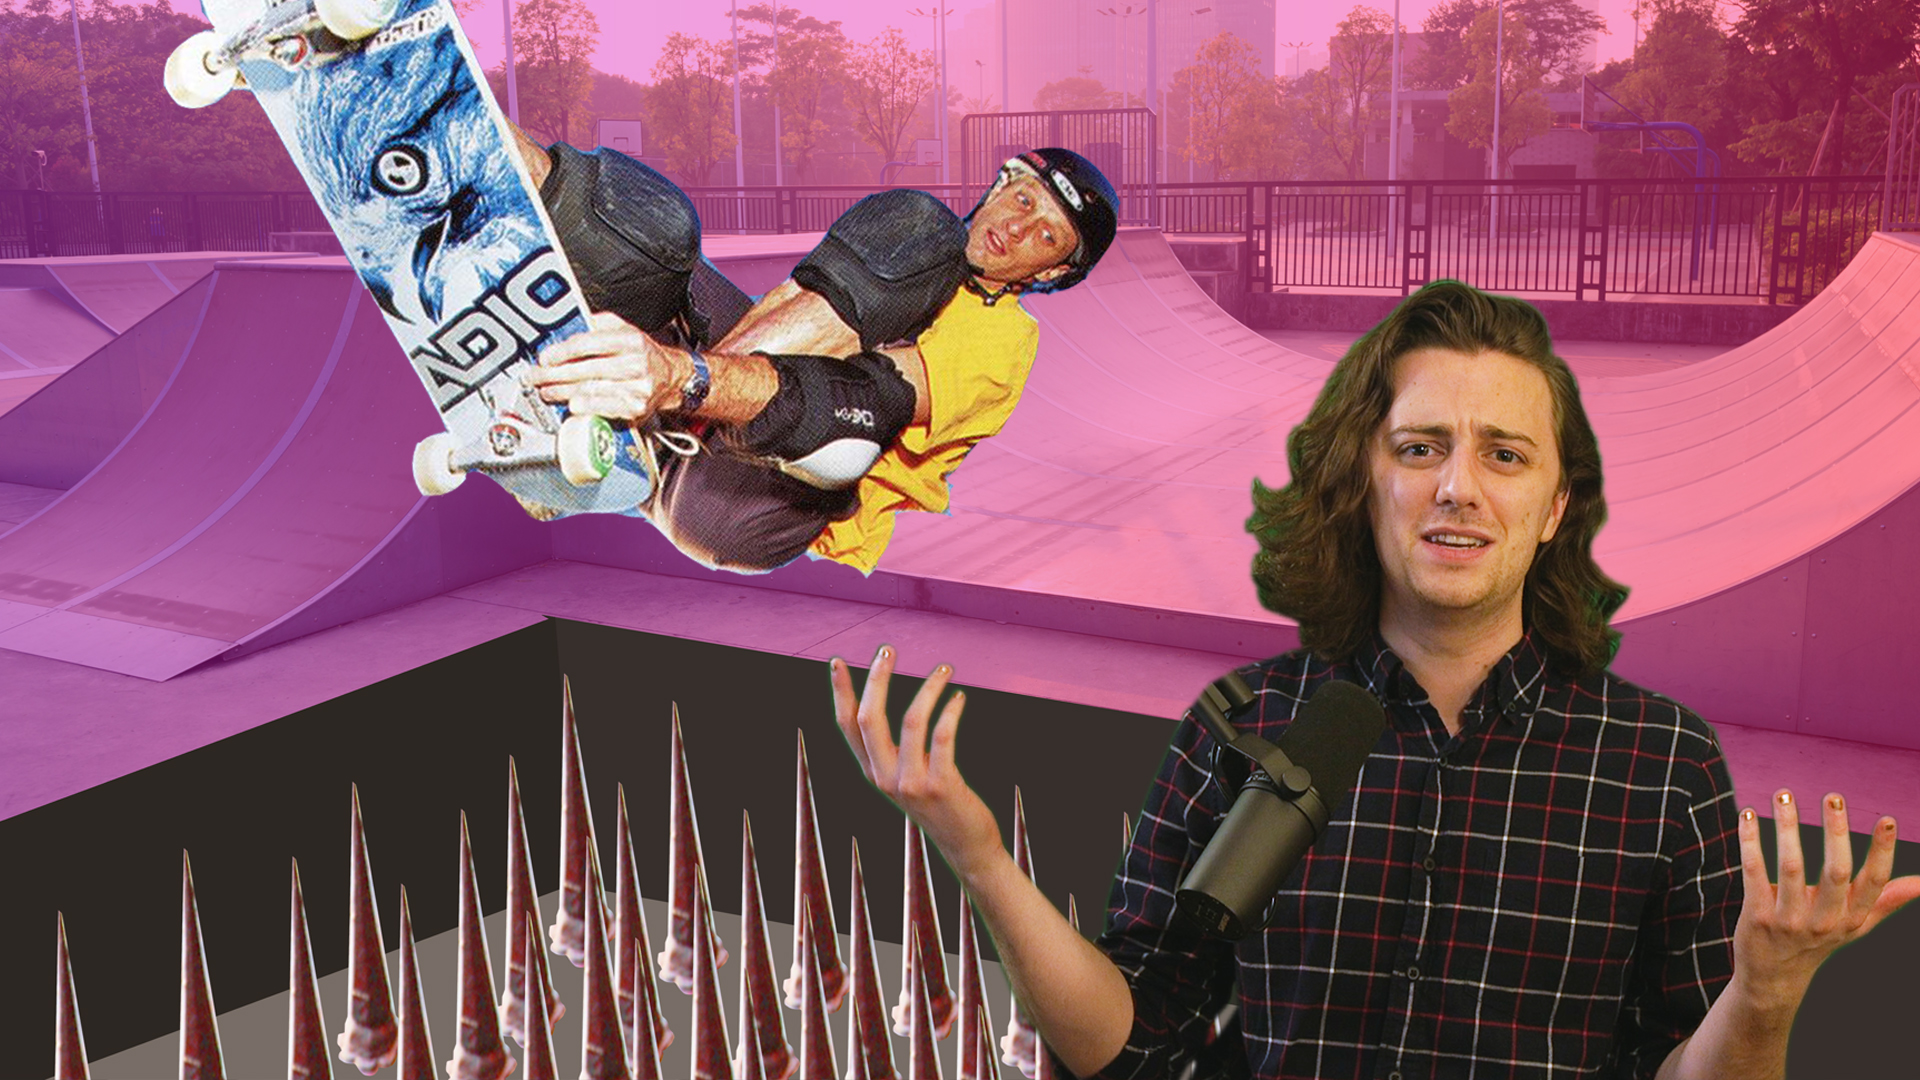 Brian David Gilbert gestures in confusion in front of an image of Tony Hawk falling into a pit of spikes.